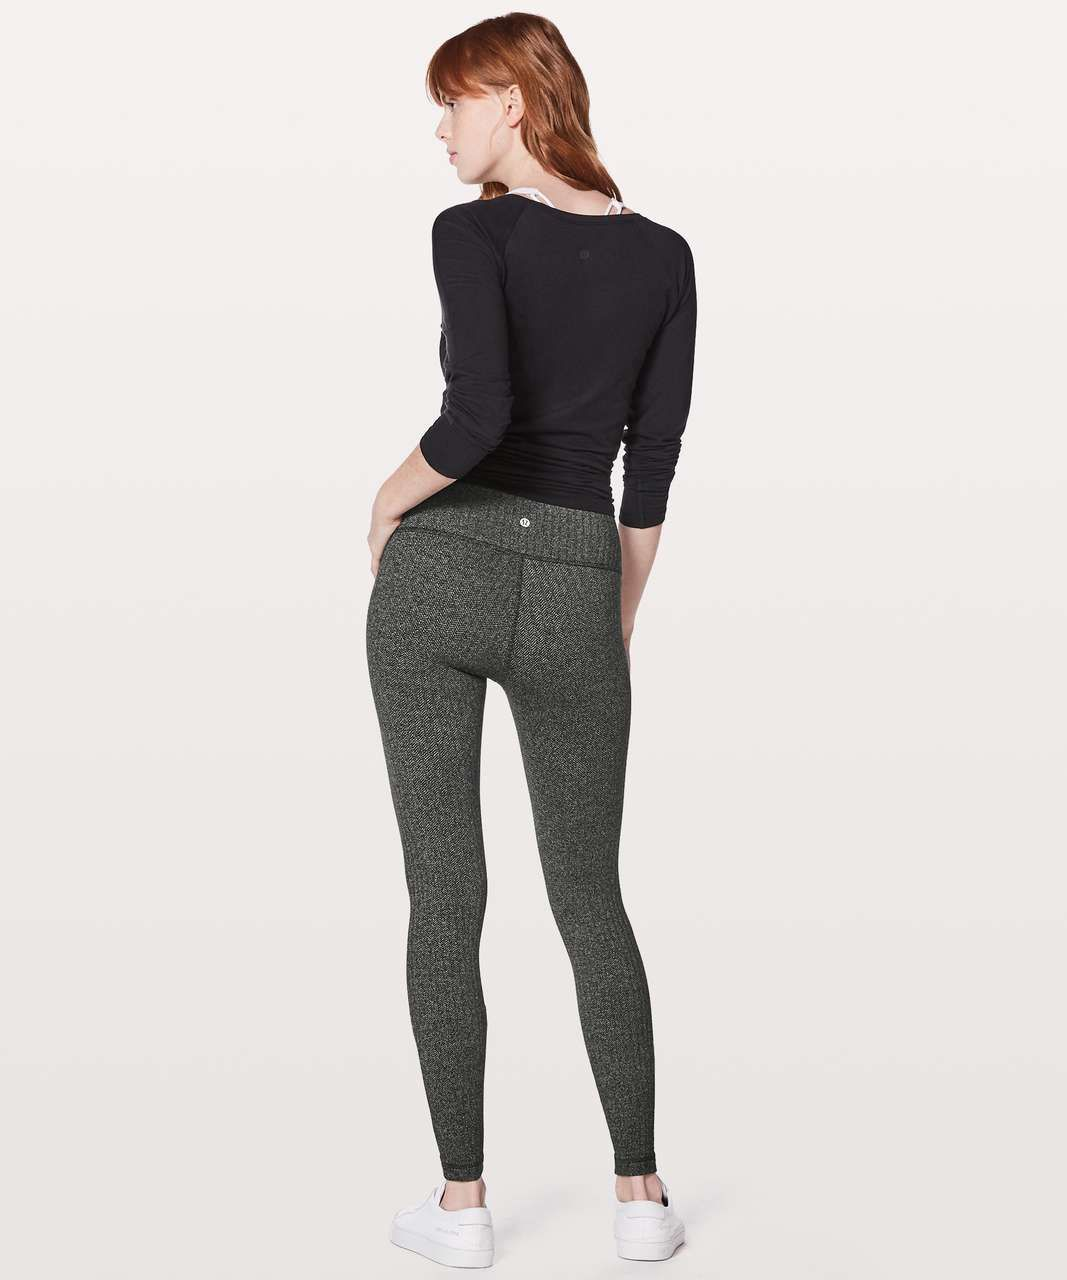 37ca37a0d56 Lululemon Wunder Under Low-Rise Tight  28